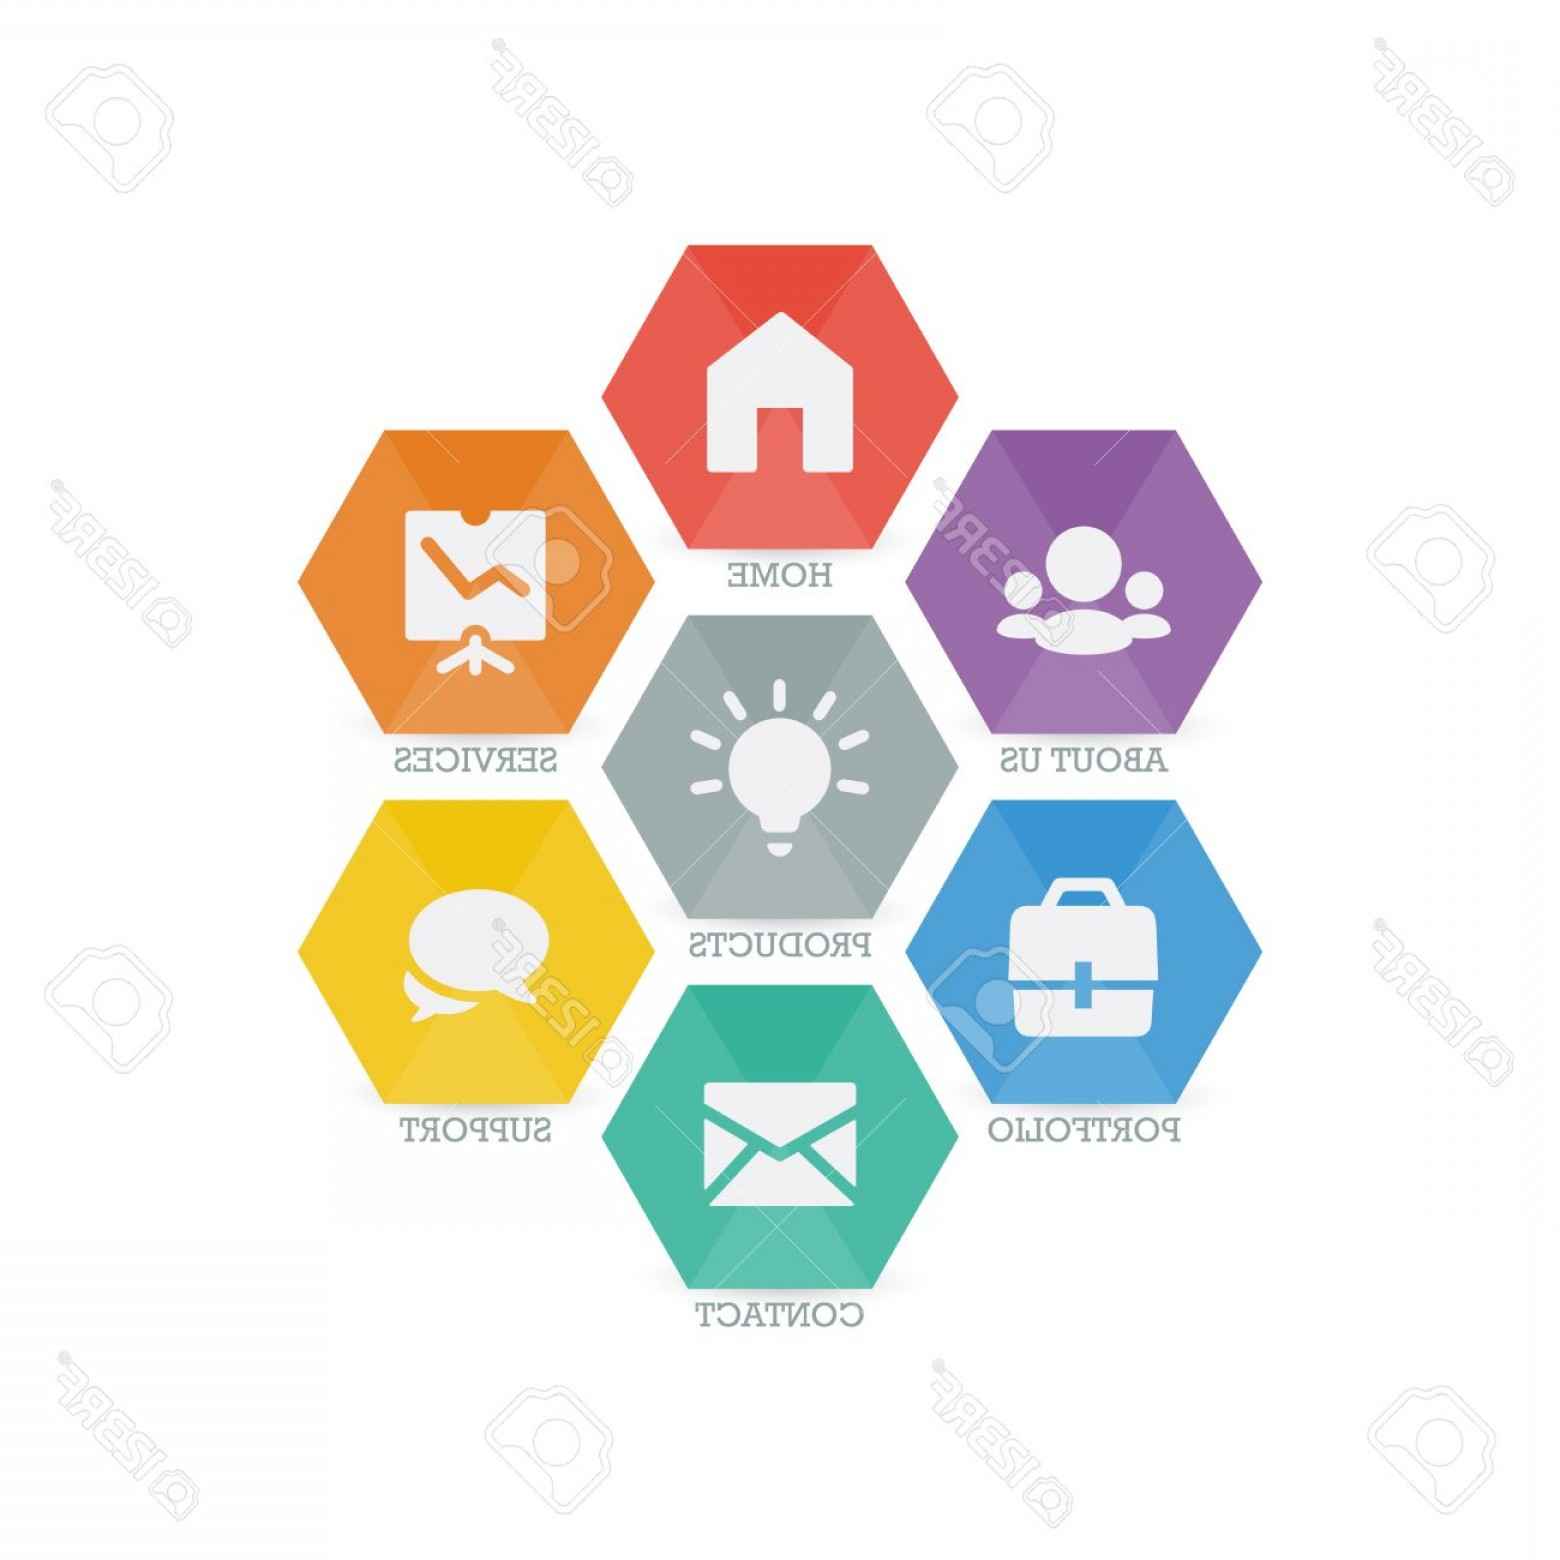 Support Vector Graphics: Photostock Vector Multipurpose Set Of Web Icons For Business Finance And Communication Vector Graphic Template